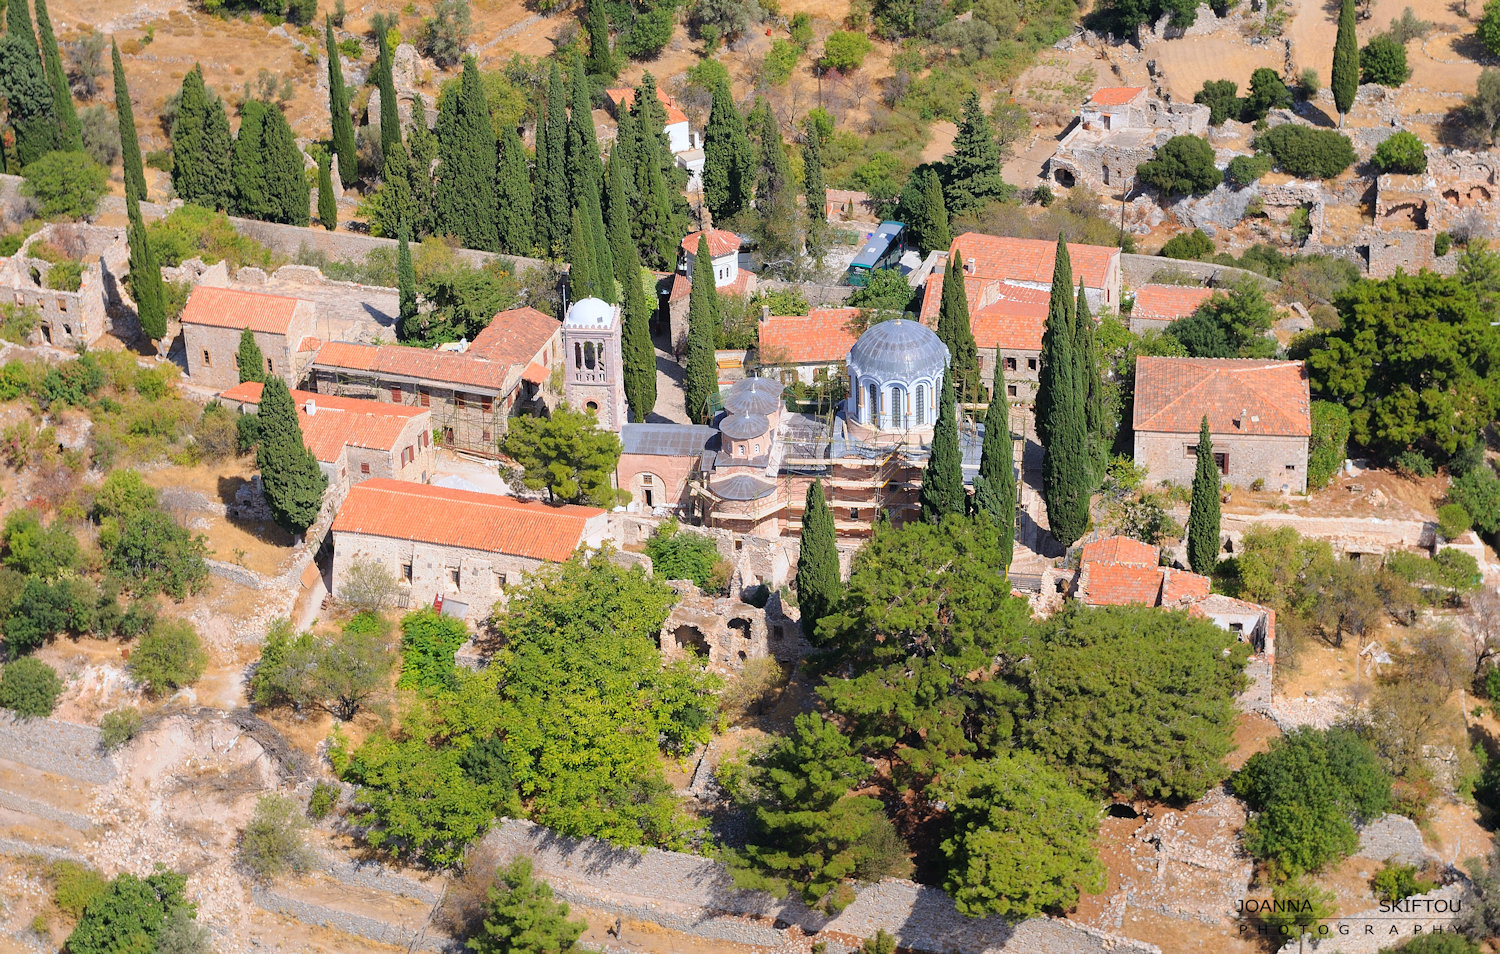 Aerial photography by Joanna Skiftou,Chios, Greece